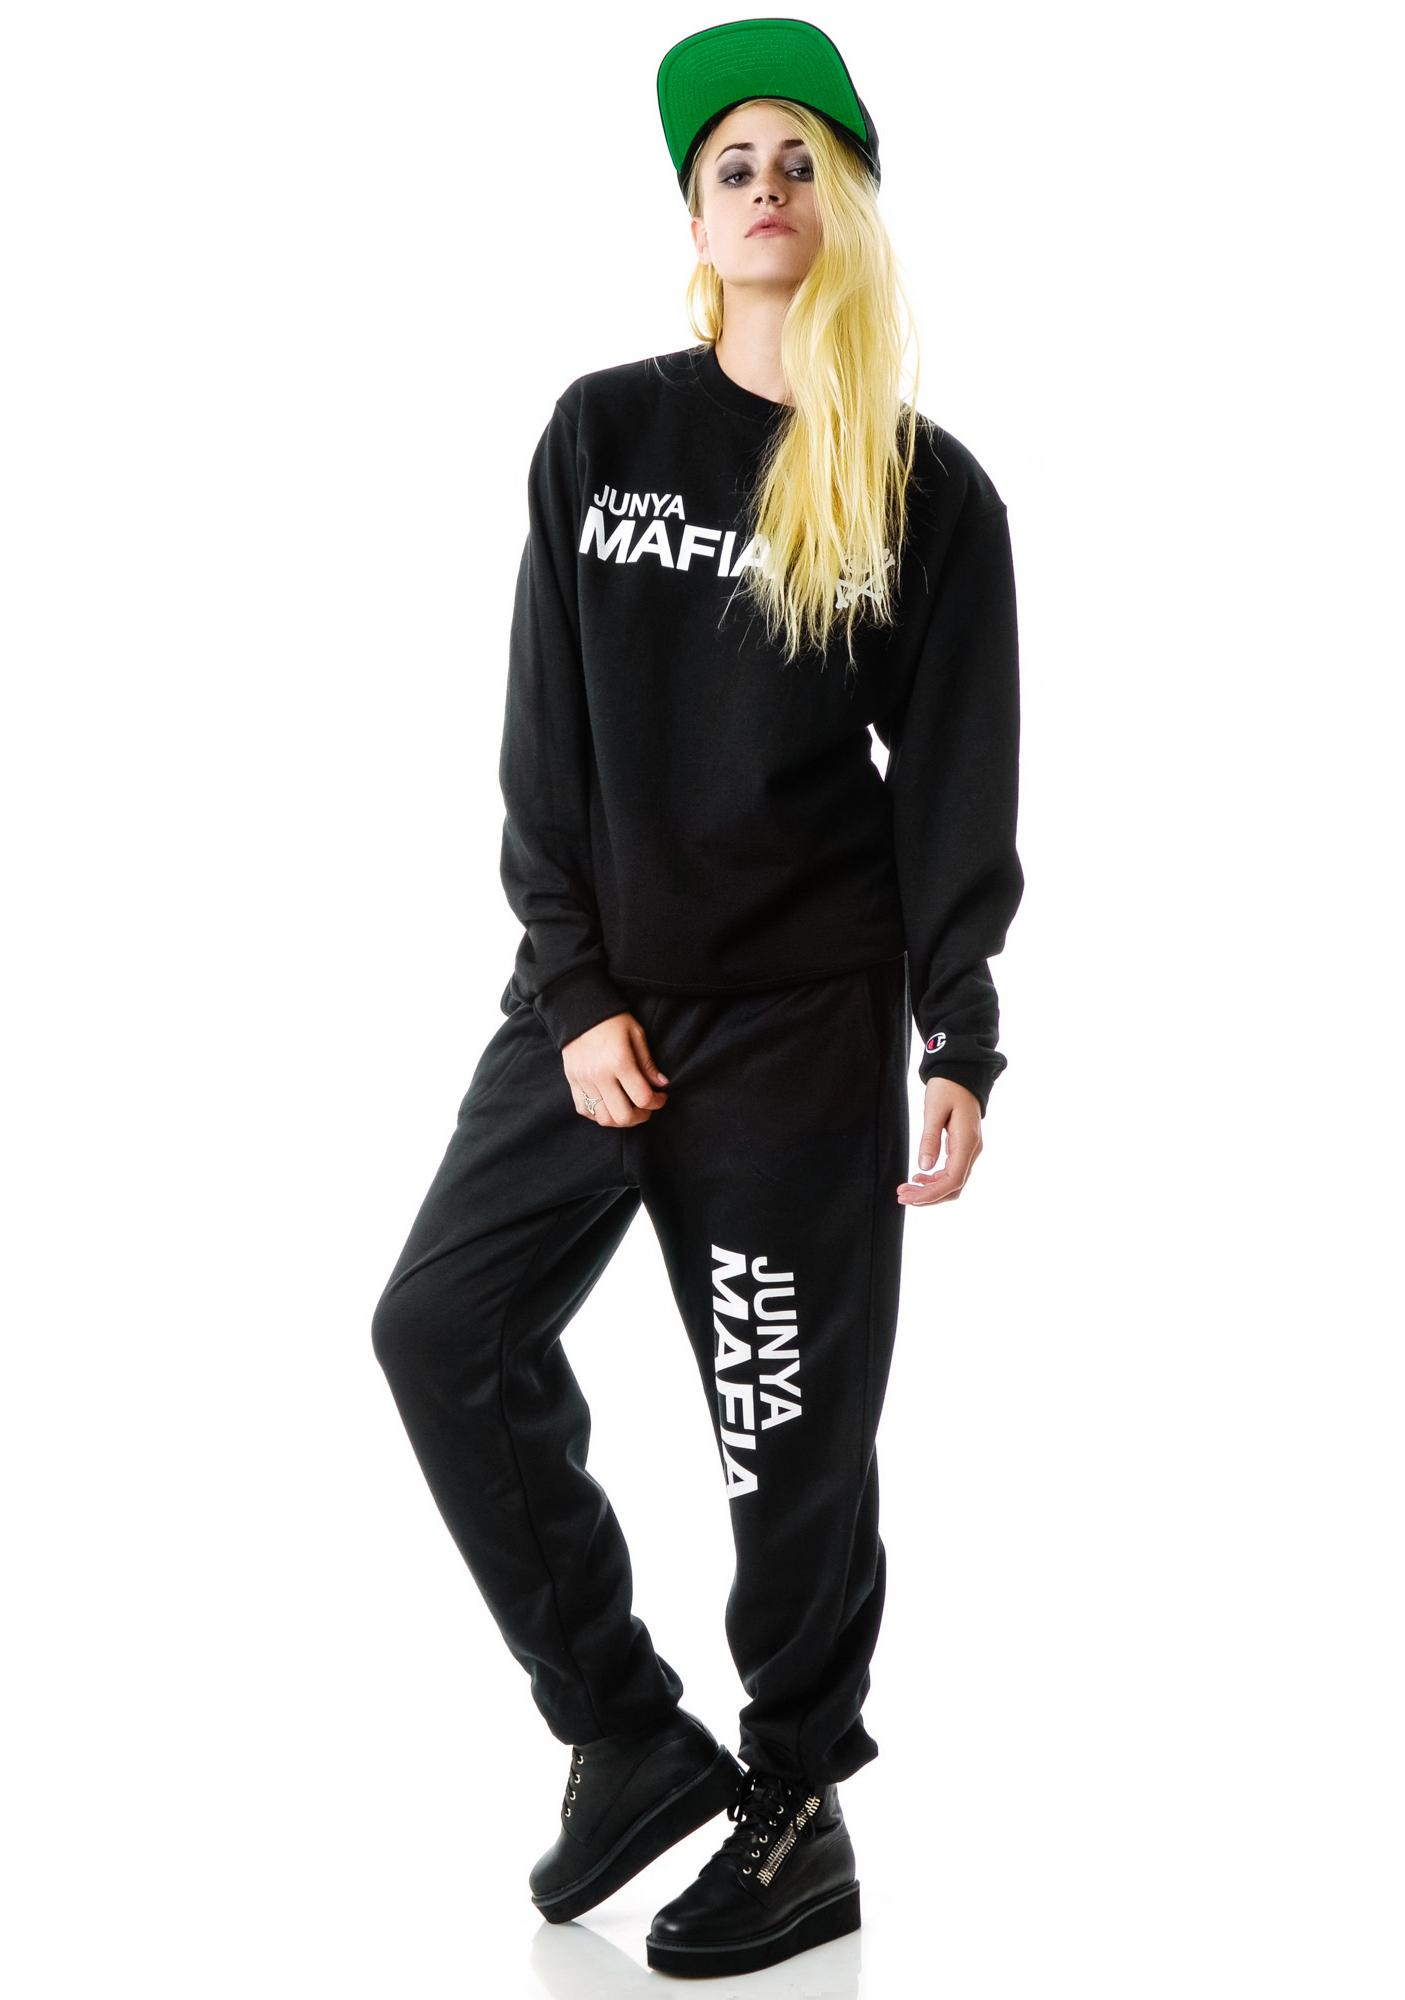 Junya Mafia Leader Sweatpants